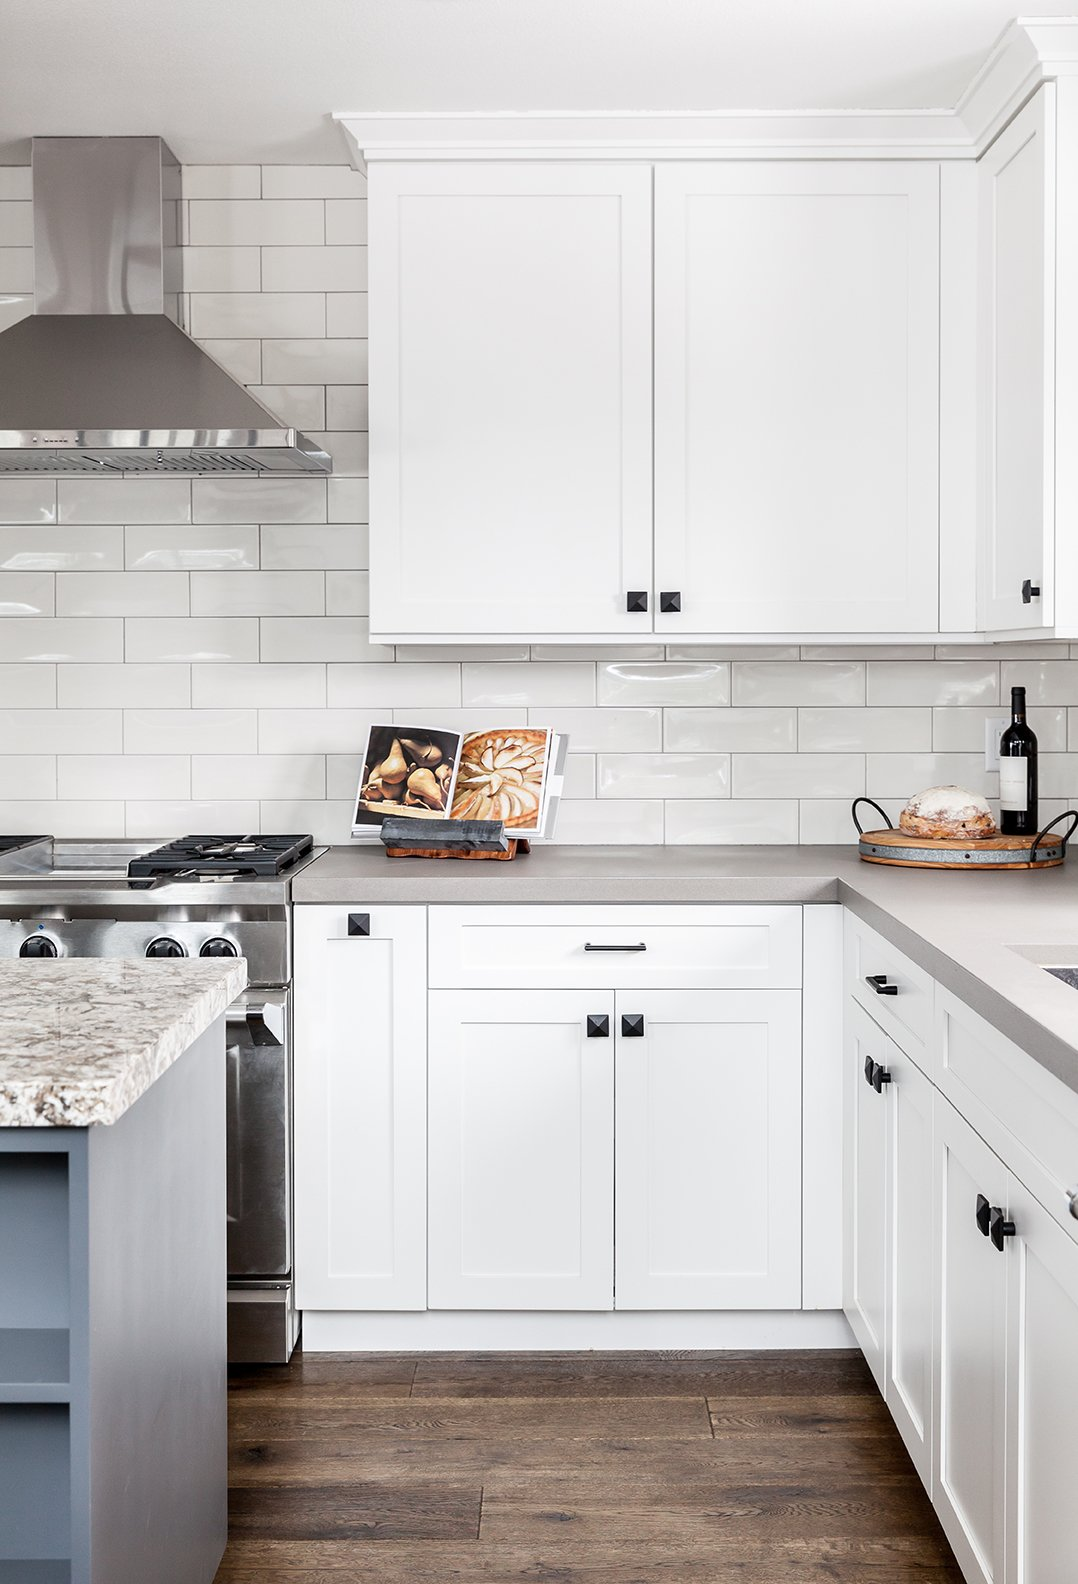 Dwell Magazine : September / October 2017 Tagged: Kitchen, Range, Range Hood, and Subway Tile Backsplashe.  Photo 4 of 6 in In This A-Frame Cabin Makeover, Simplicity Is Key